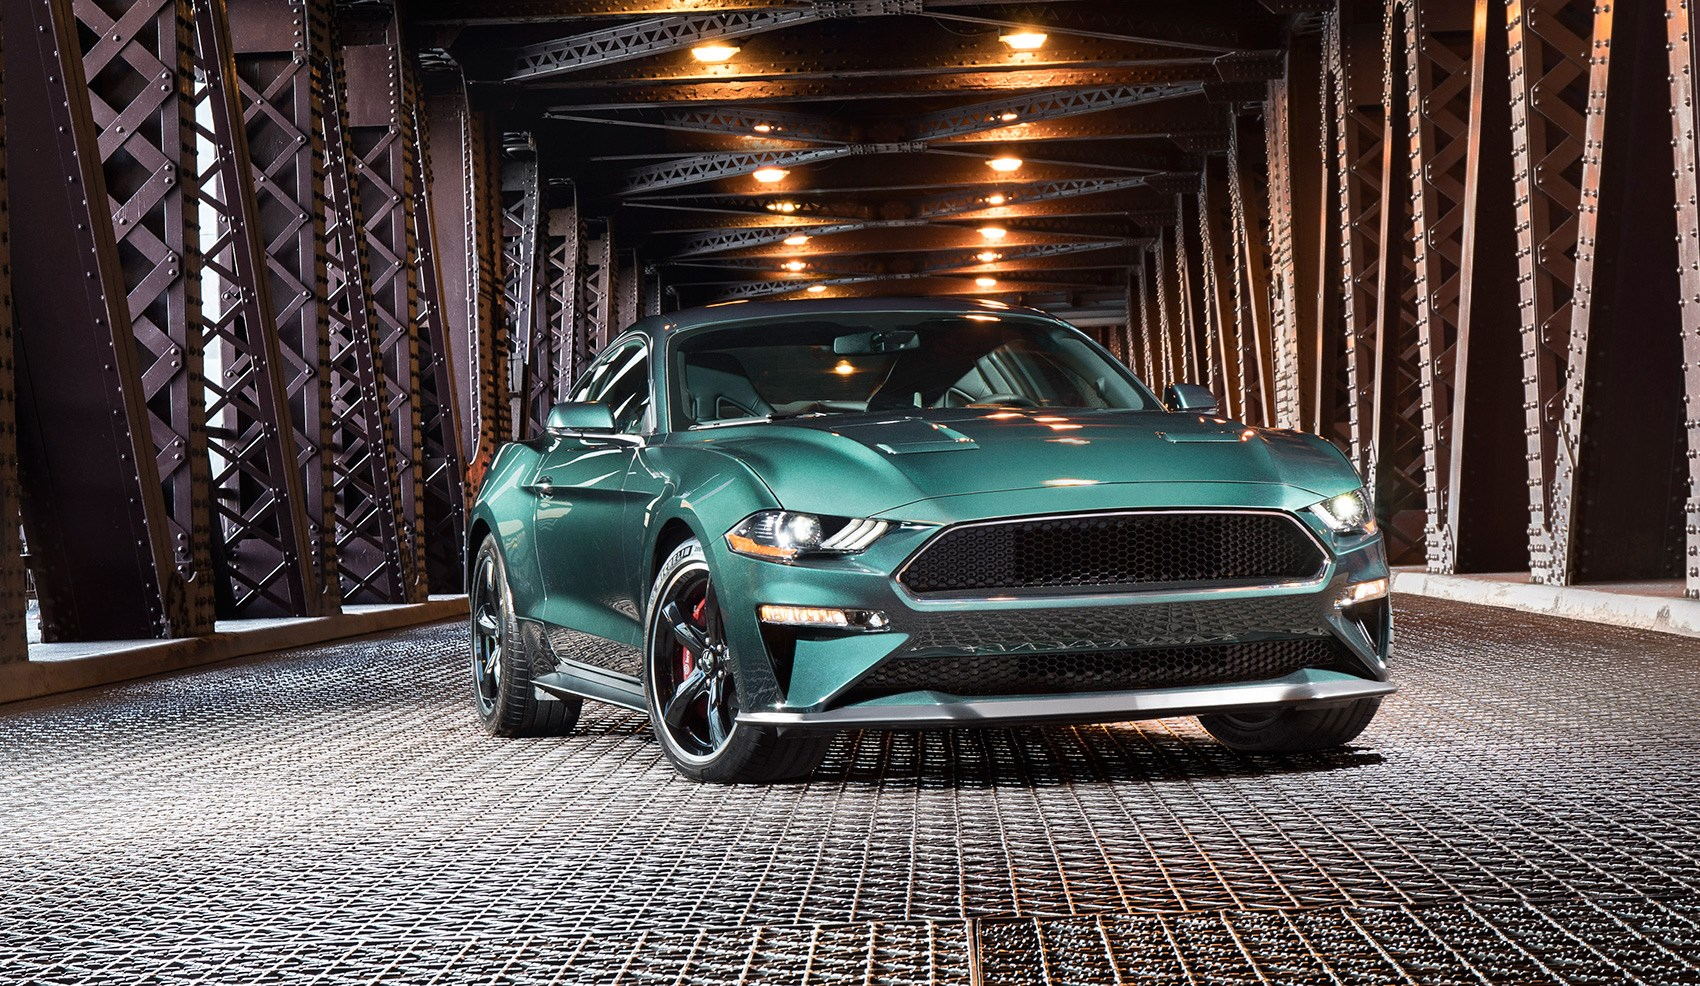 2019 Ford Mustang Sports Car The Bullitt Is Back >> Ford Mustang Bullitt Uk Price Revealed Car Magazine